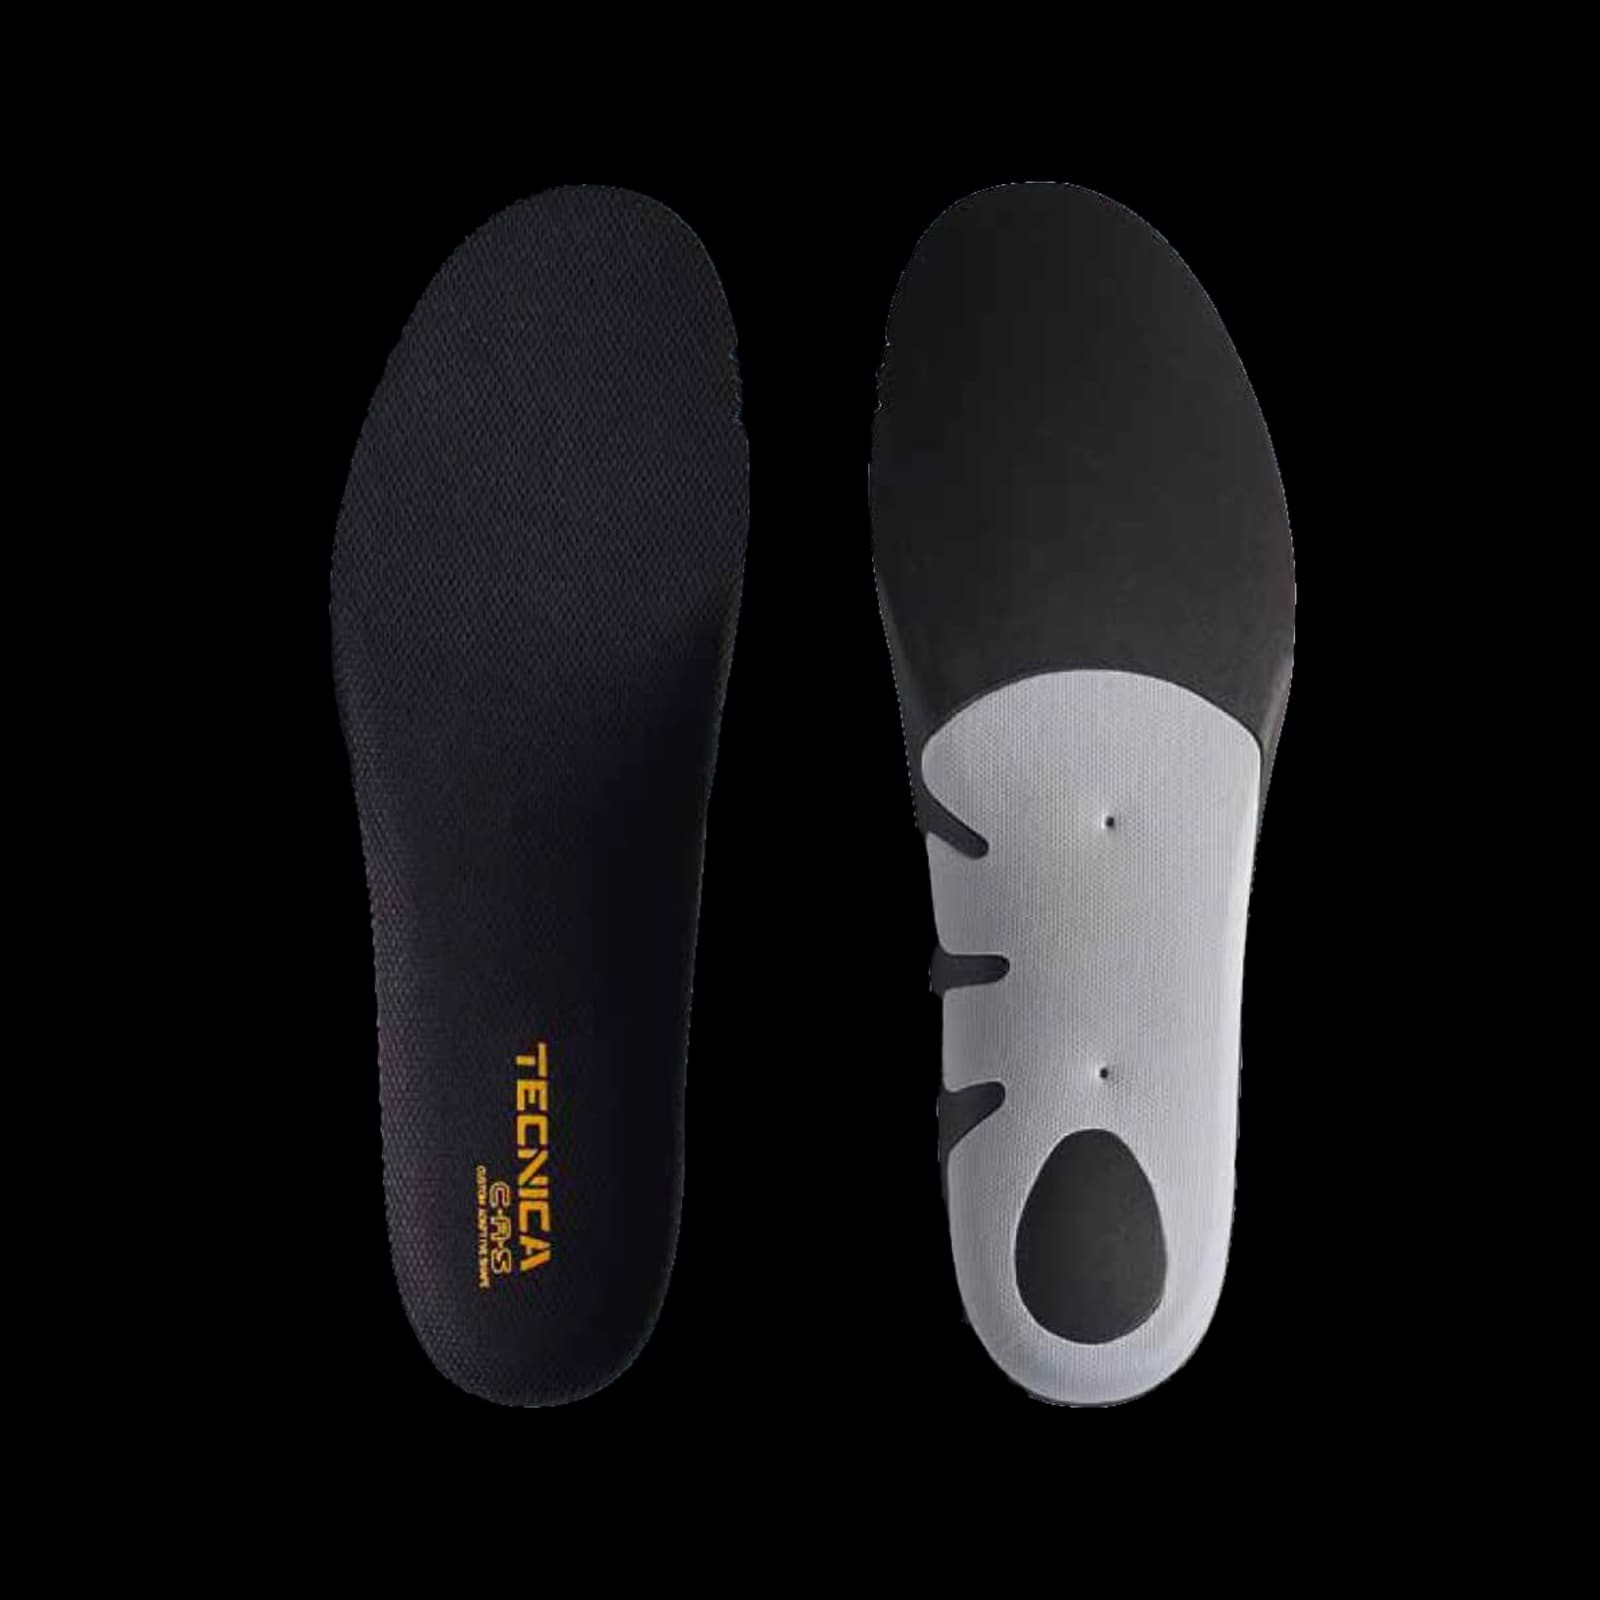 Footbed Technology